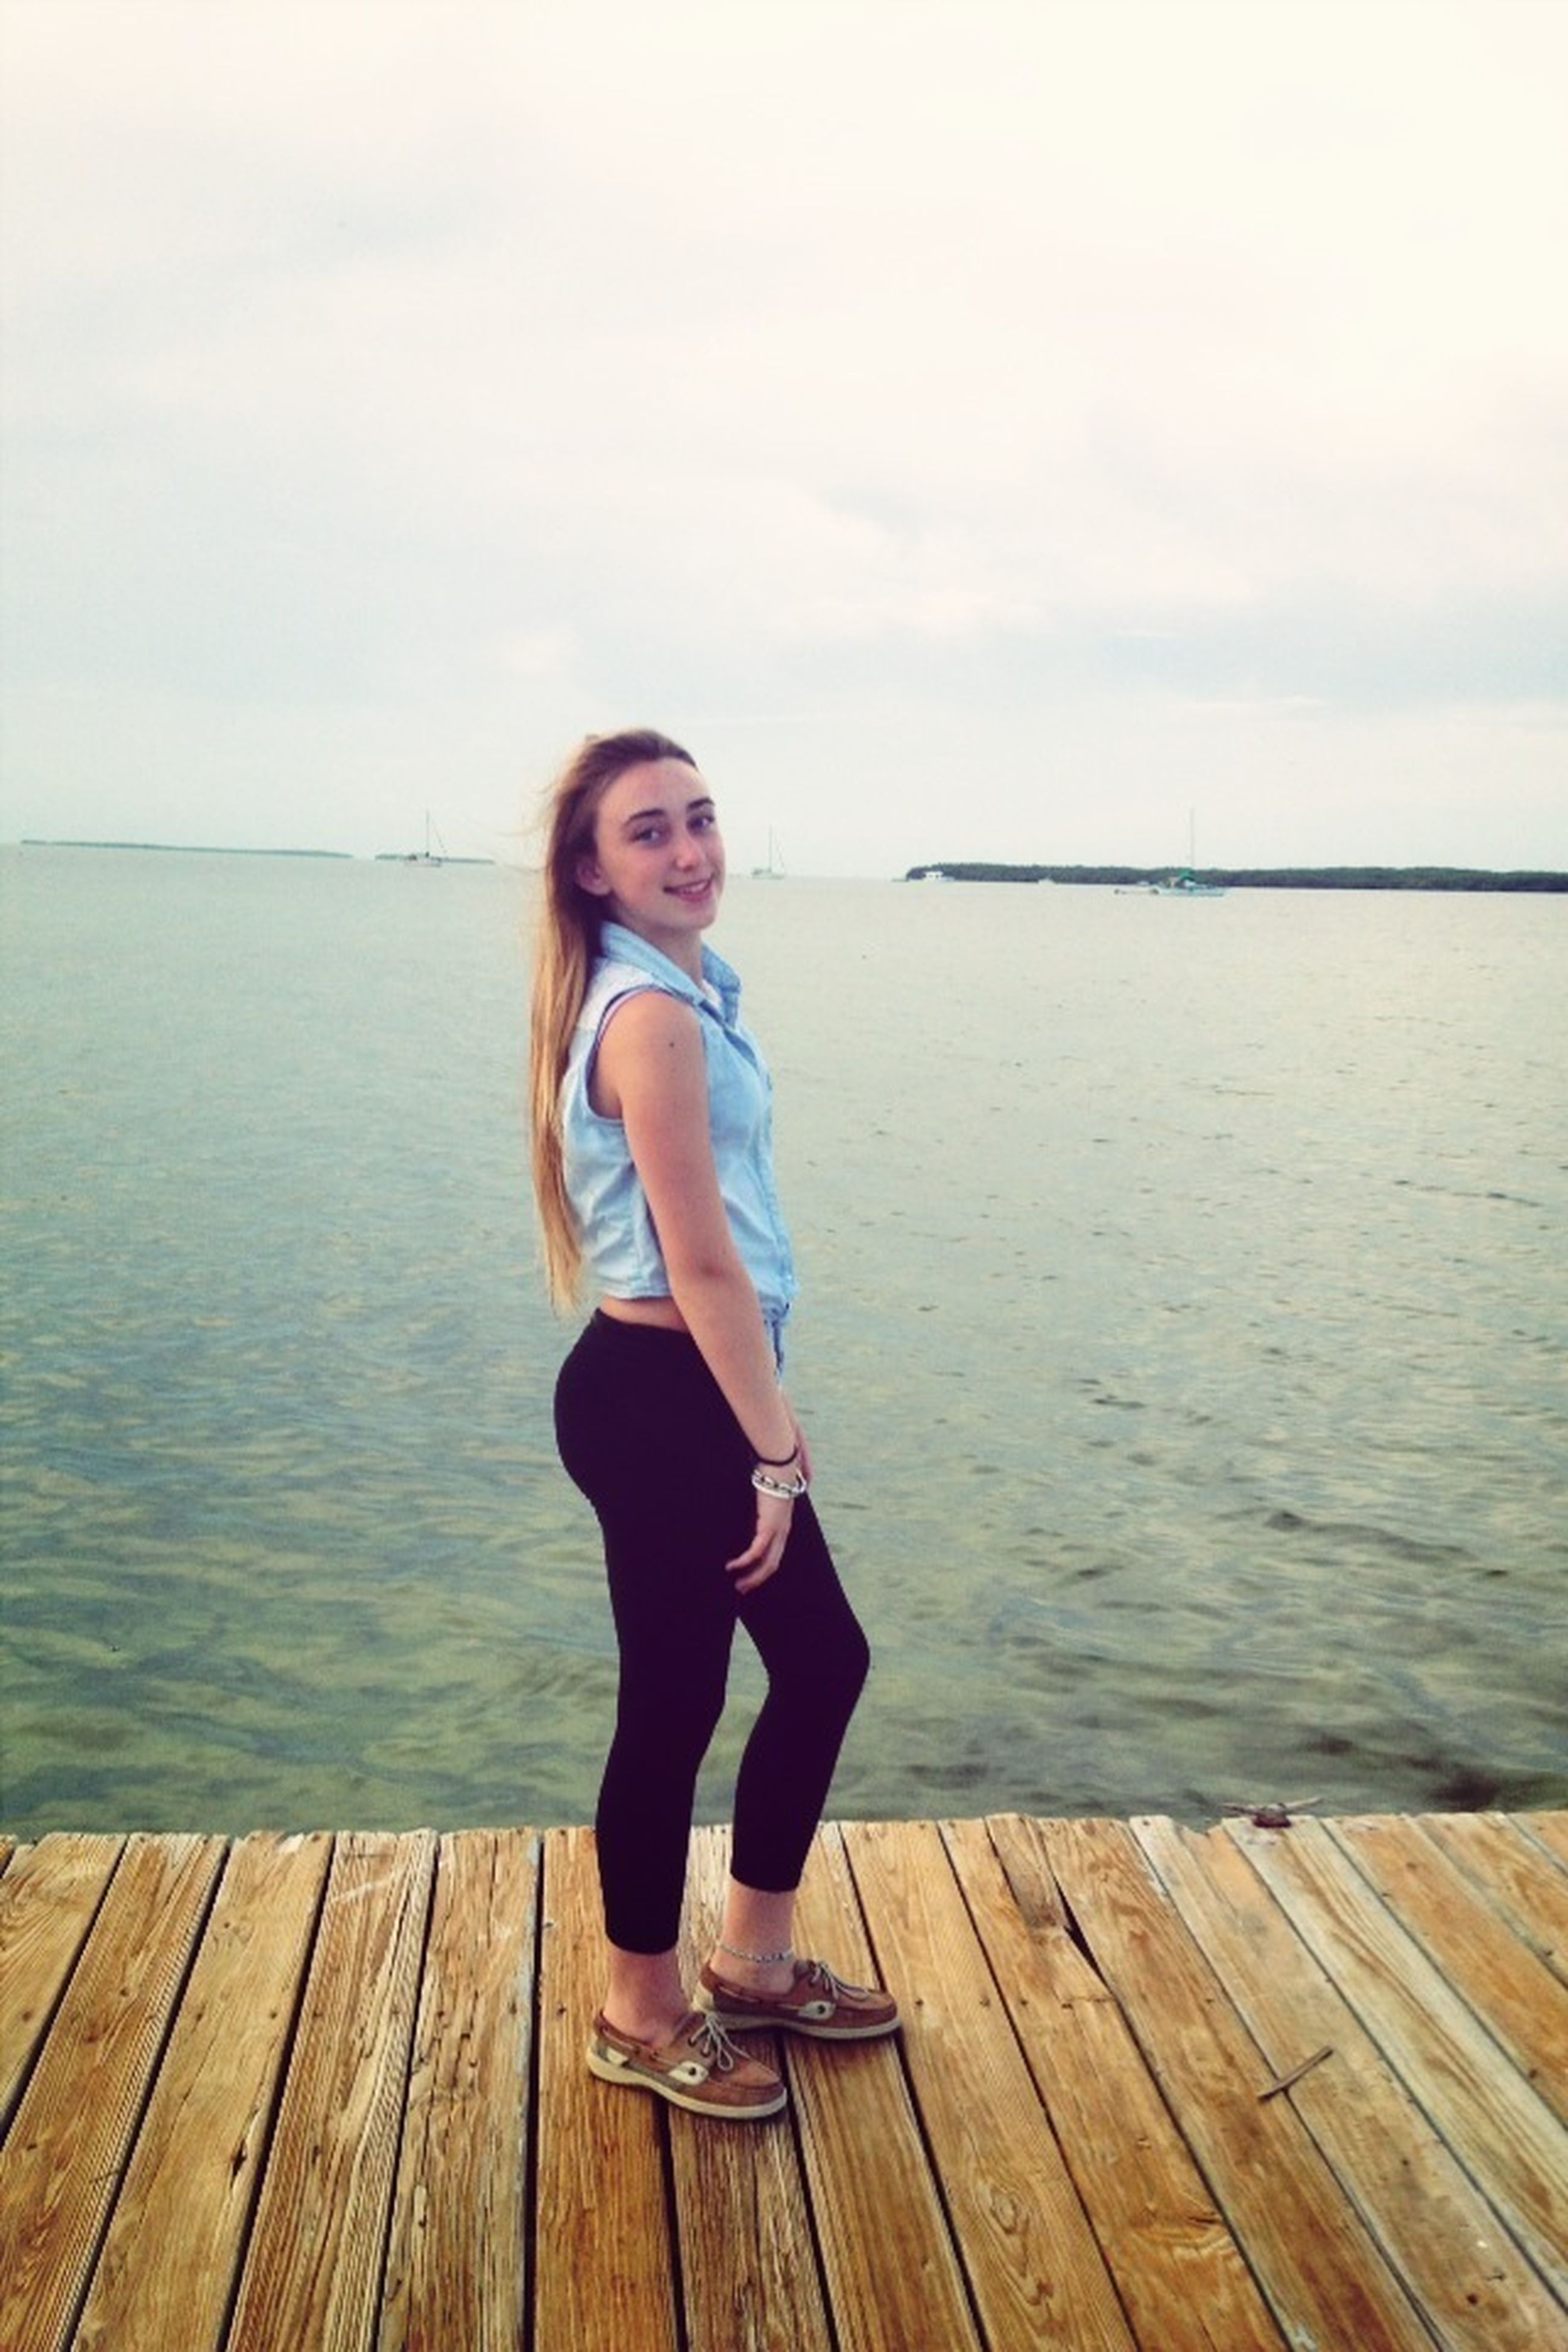 water, full length, lifestyles, casual clothing, wood - material, person, young adult, leisure activity, pier, standing, sea, looking at camera, young women, portrait, tranquility, sky, wooden, sitting